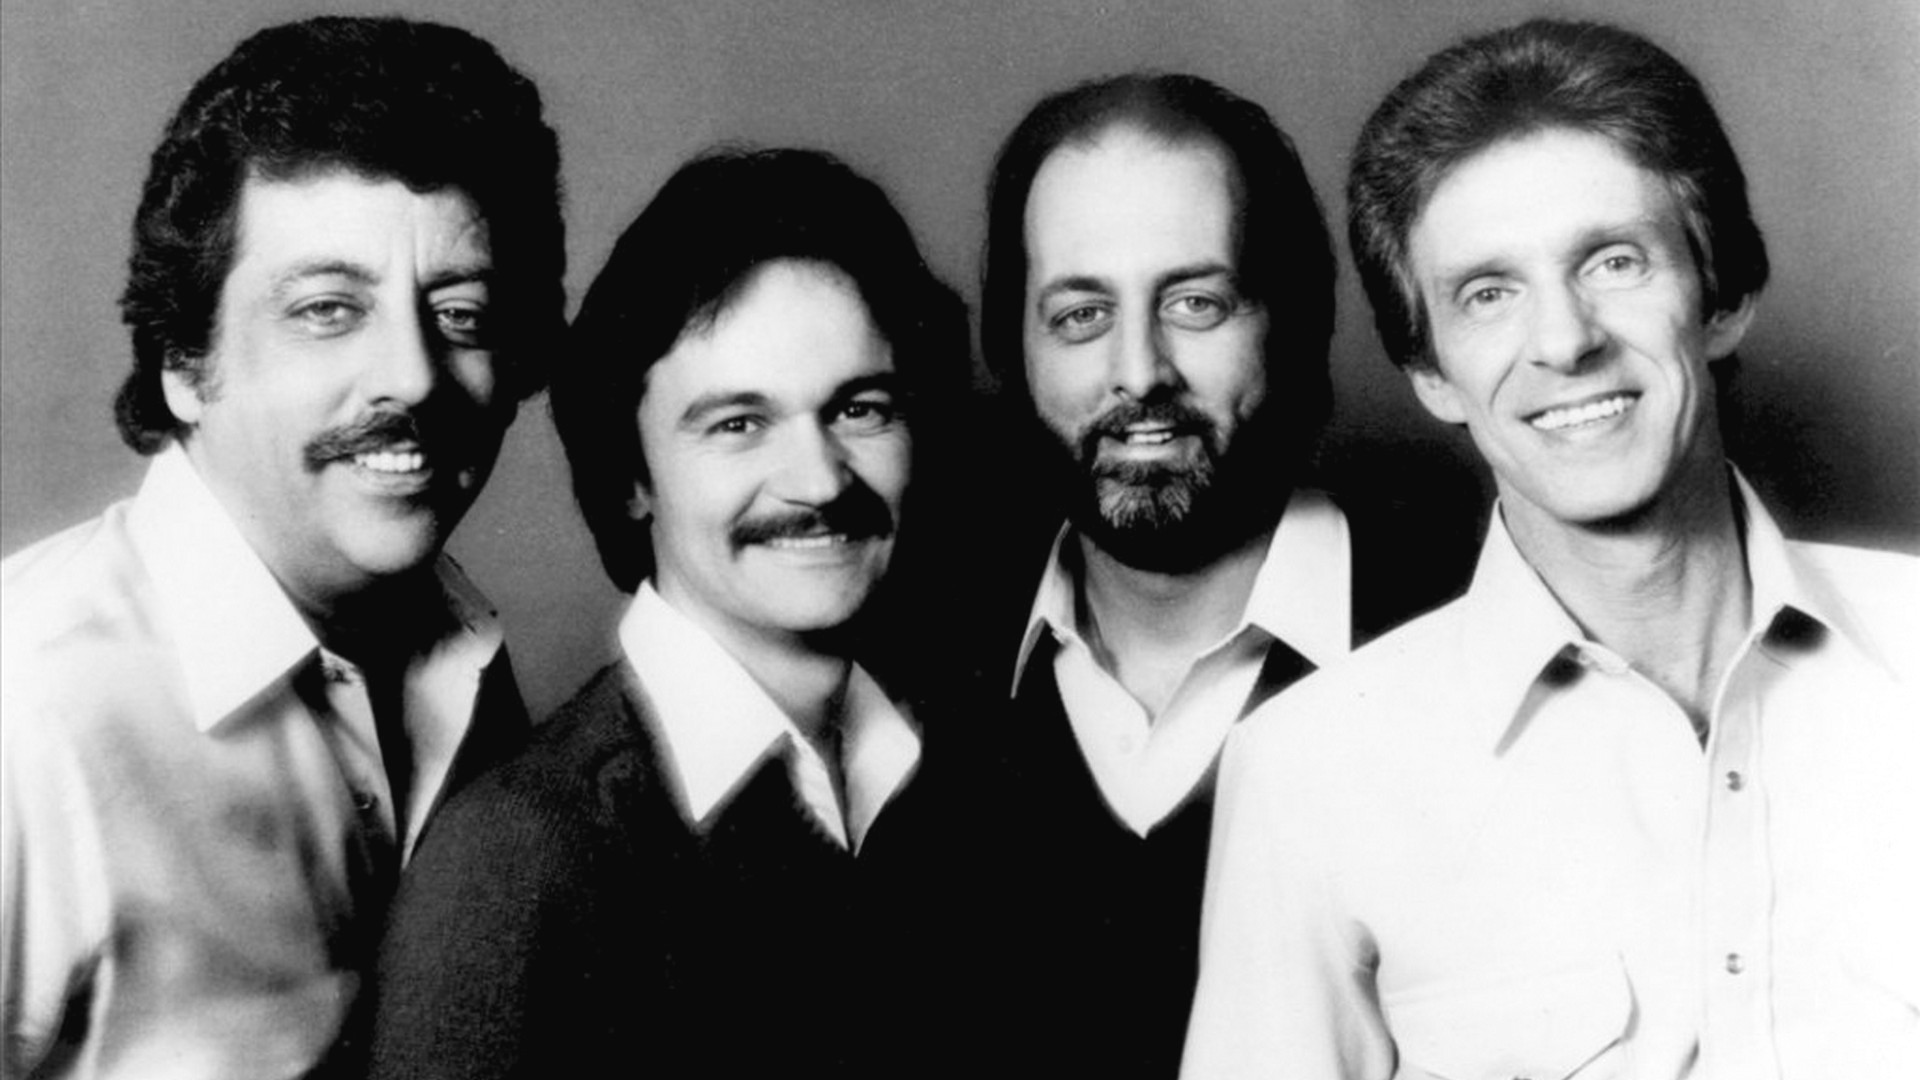 Flowers On The Wall av The Statler Brothers